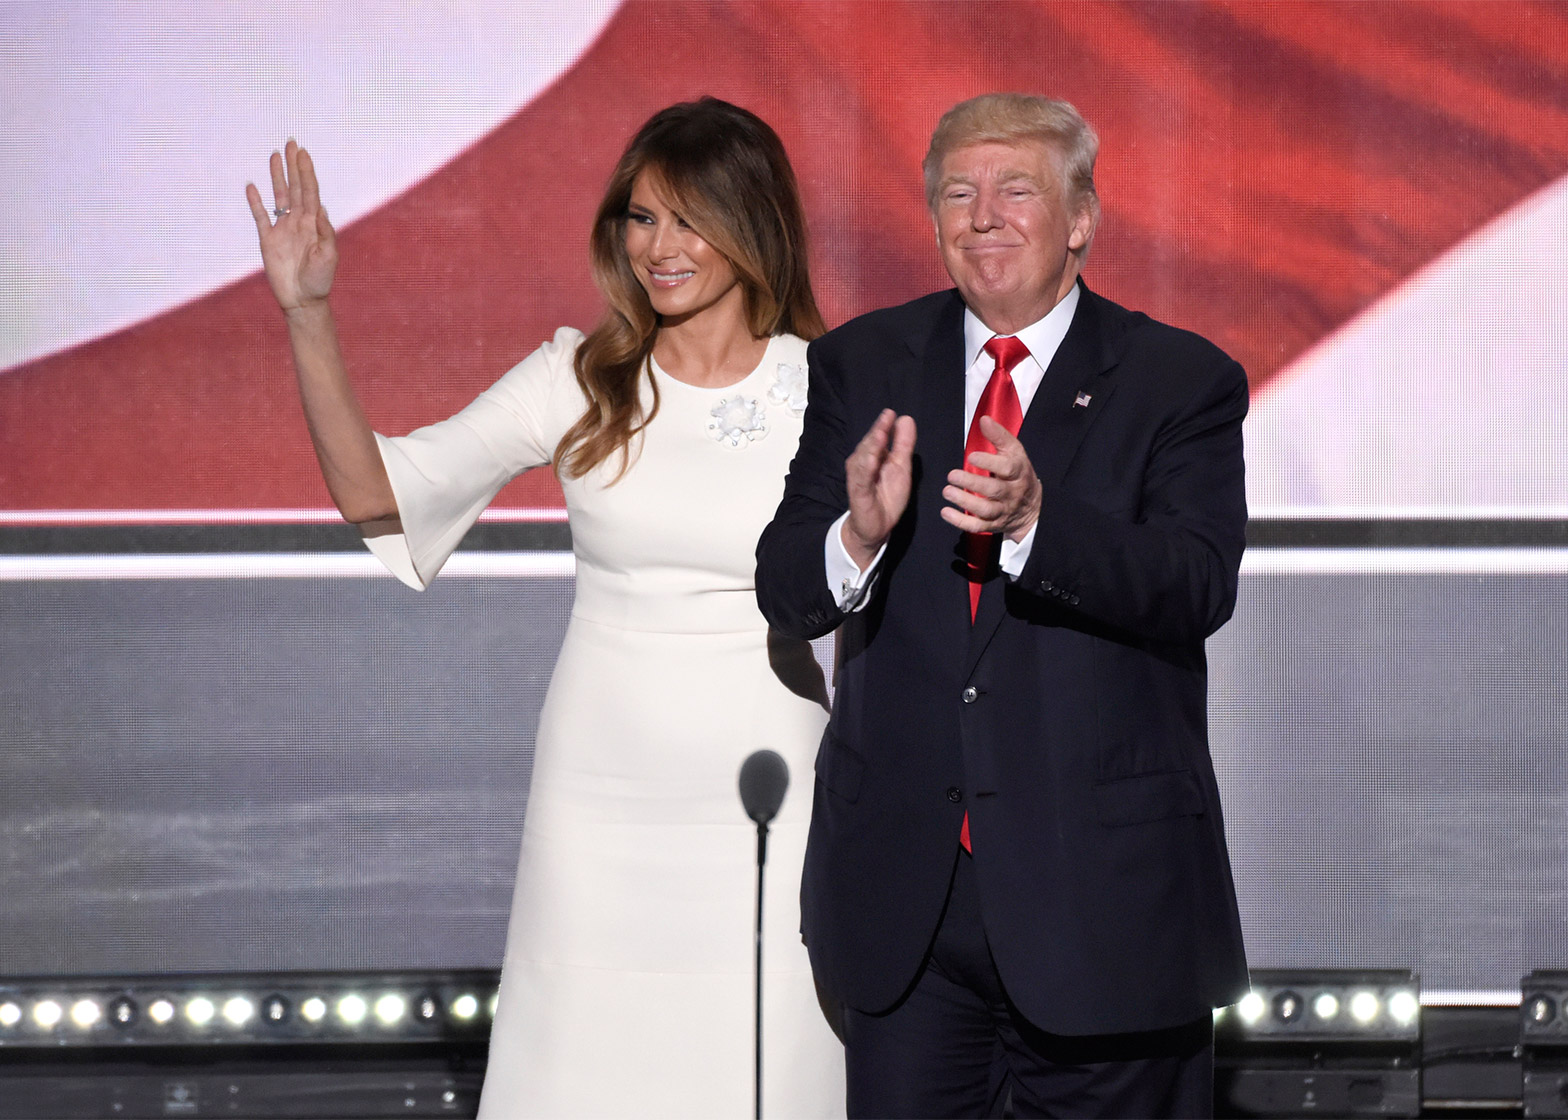 Melania Trump's website deleted after architecture degree claim debunked